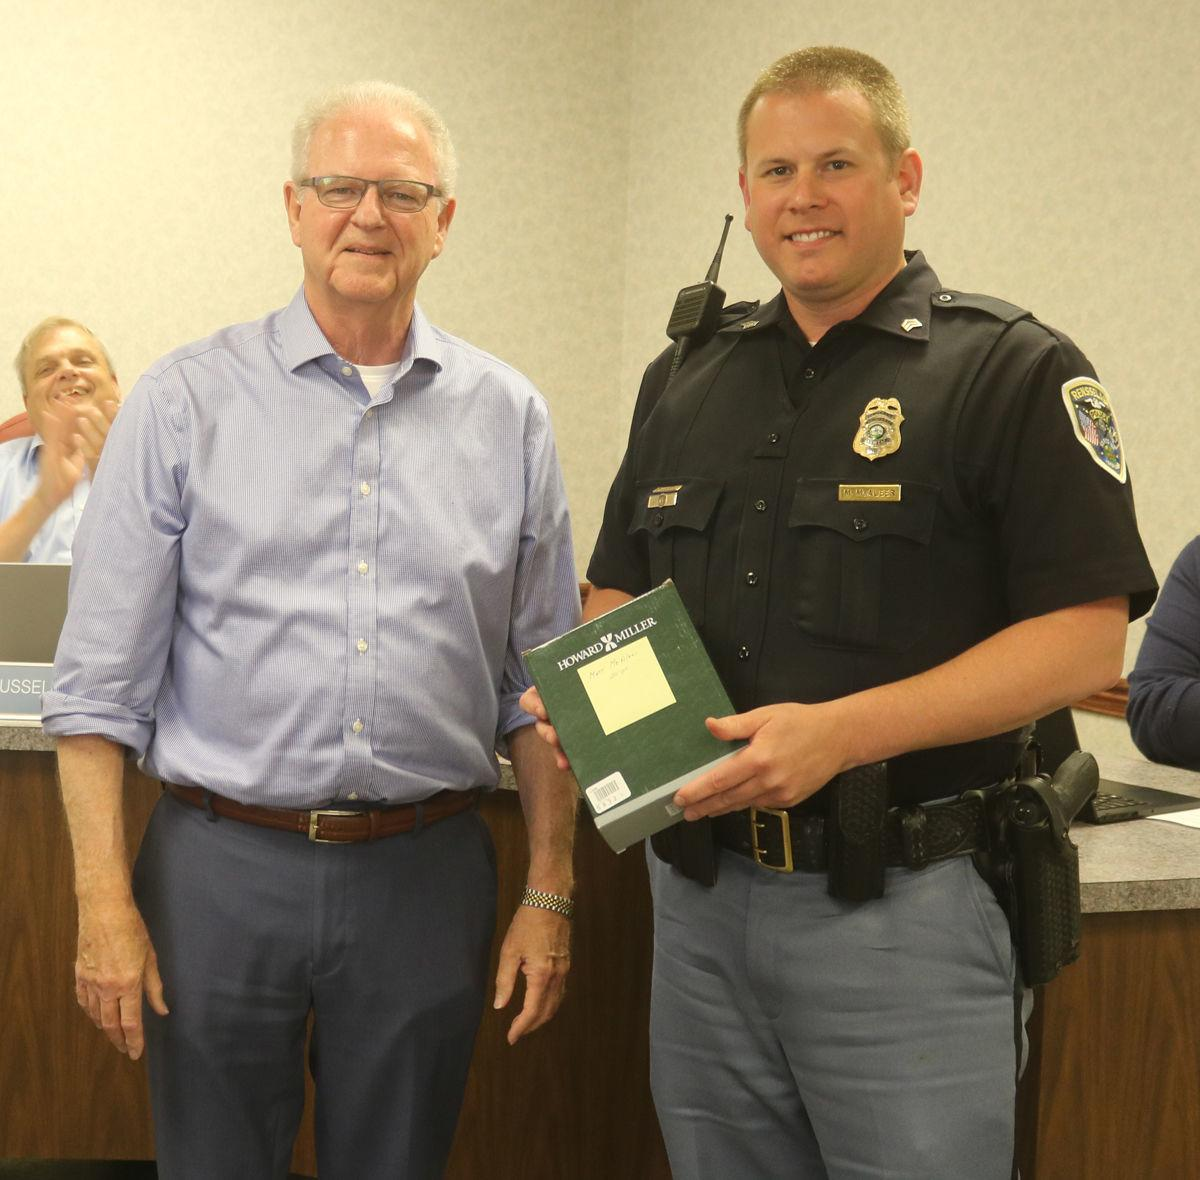 McAleer provides 20 years of service